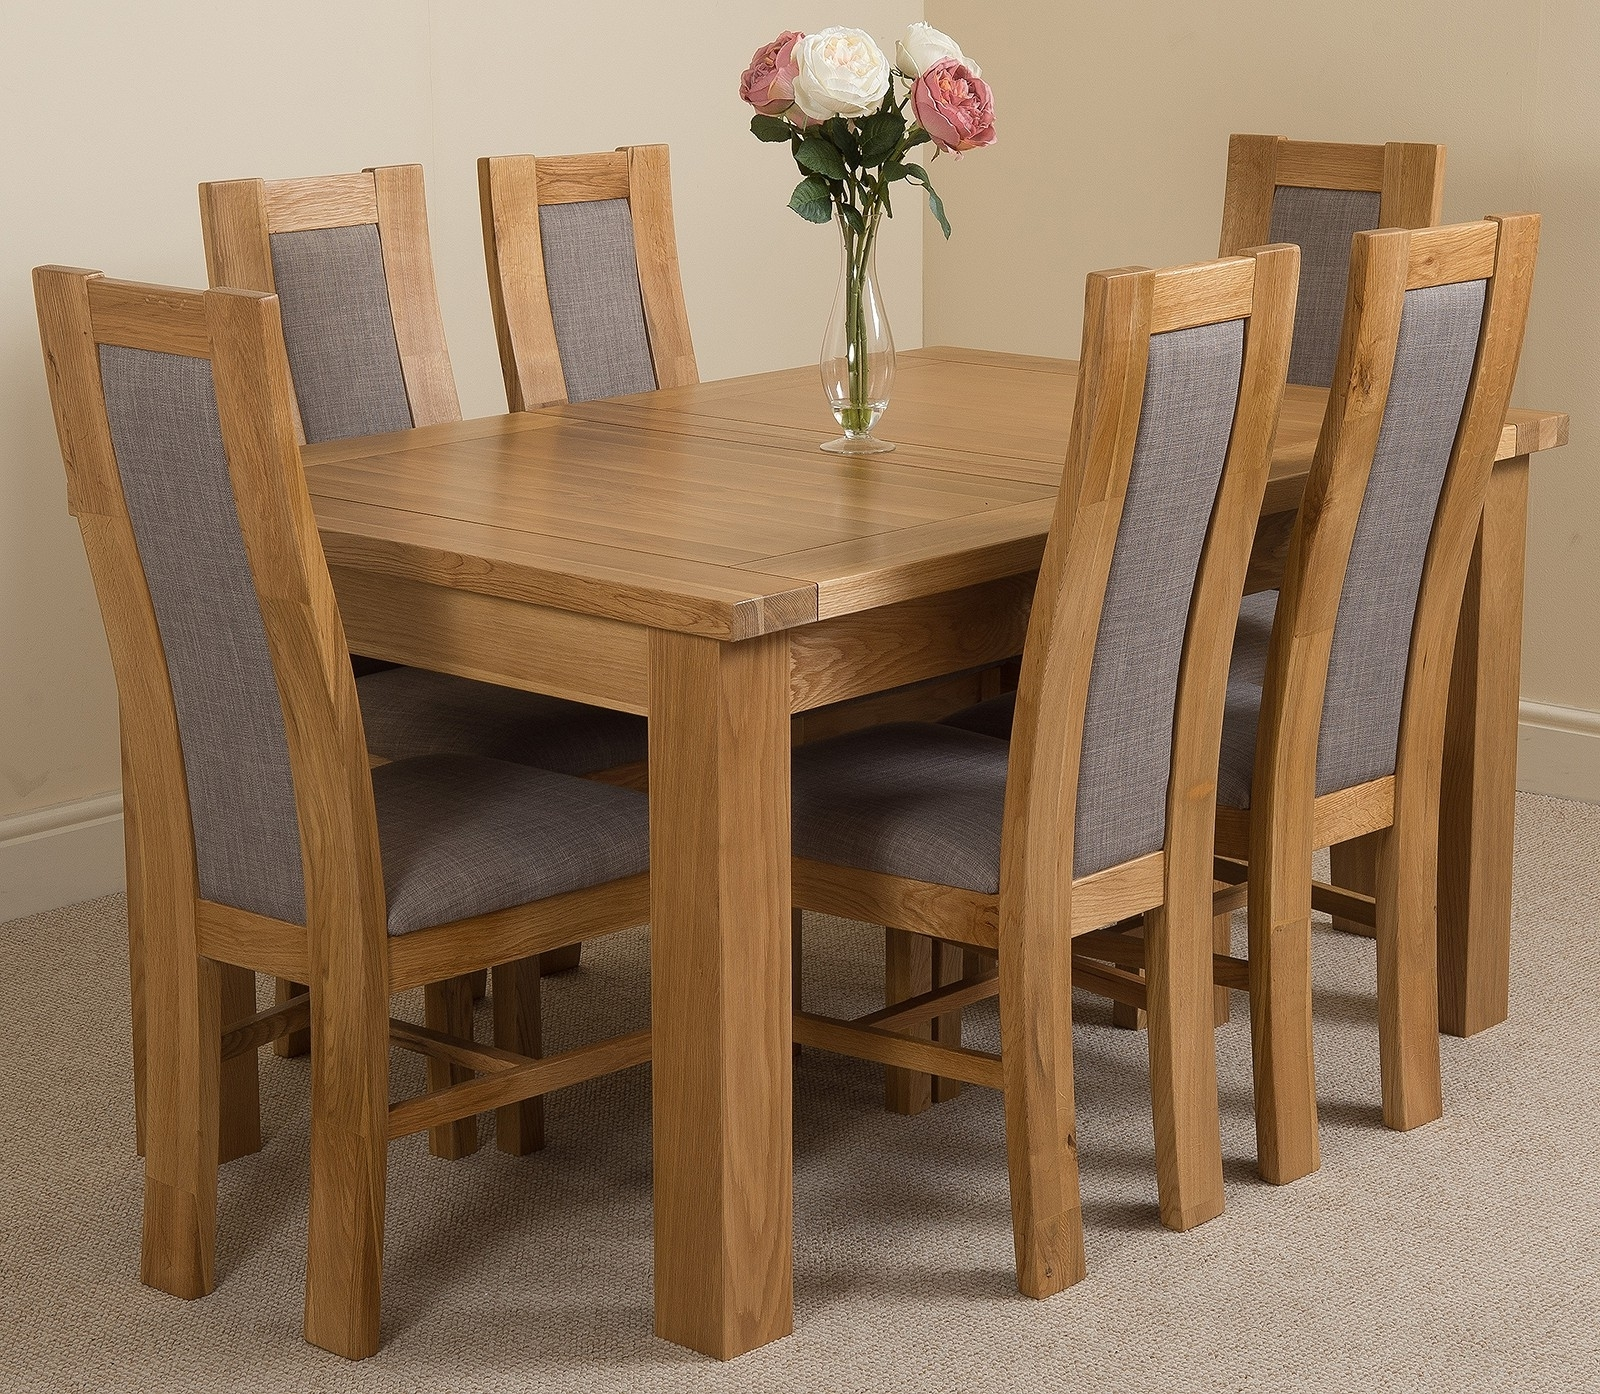 Oak Extendable Dining Tables And Chairs Within Well Known Seattle Dining Set With 6 Stanford Chairs (View 15 of 25)